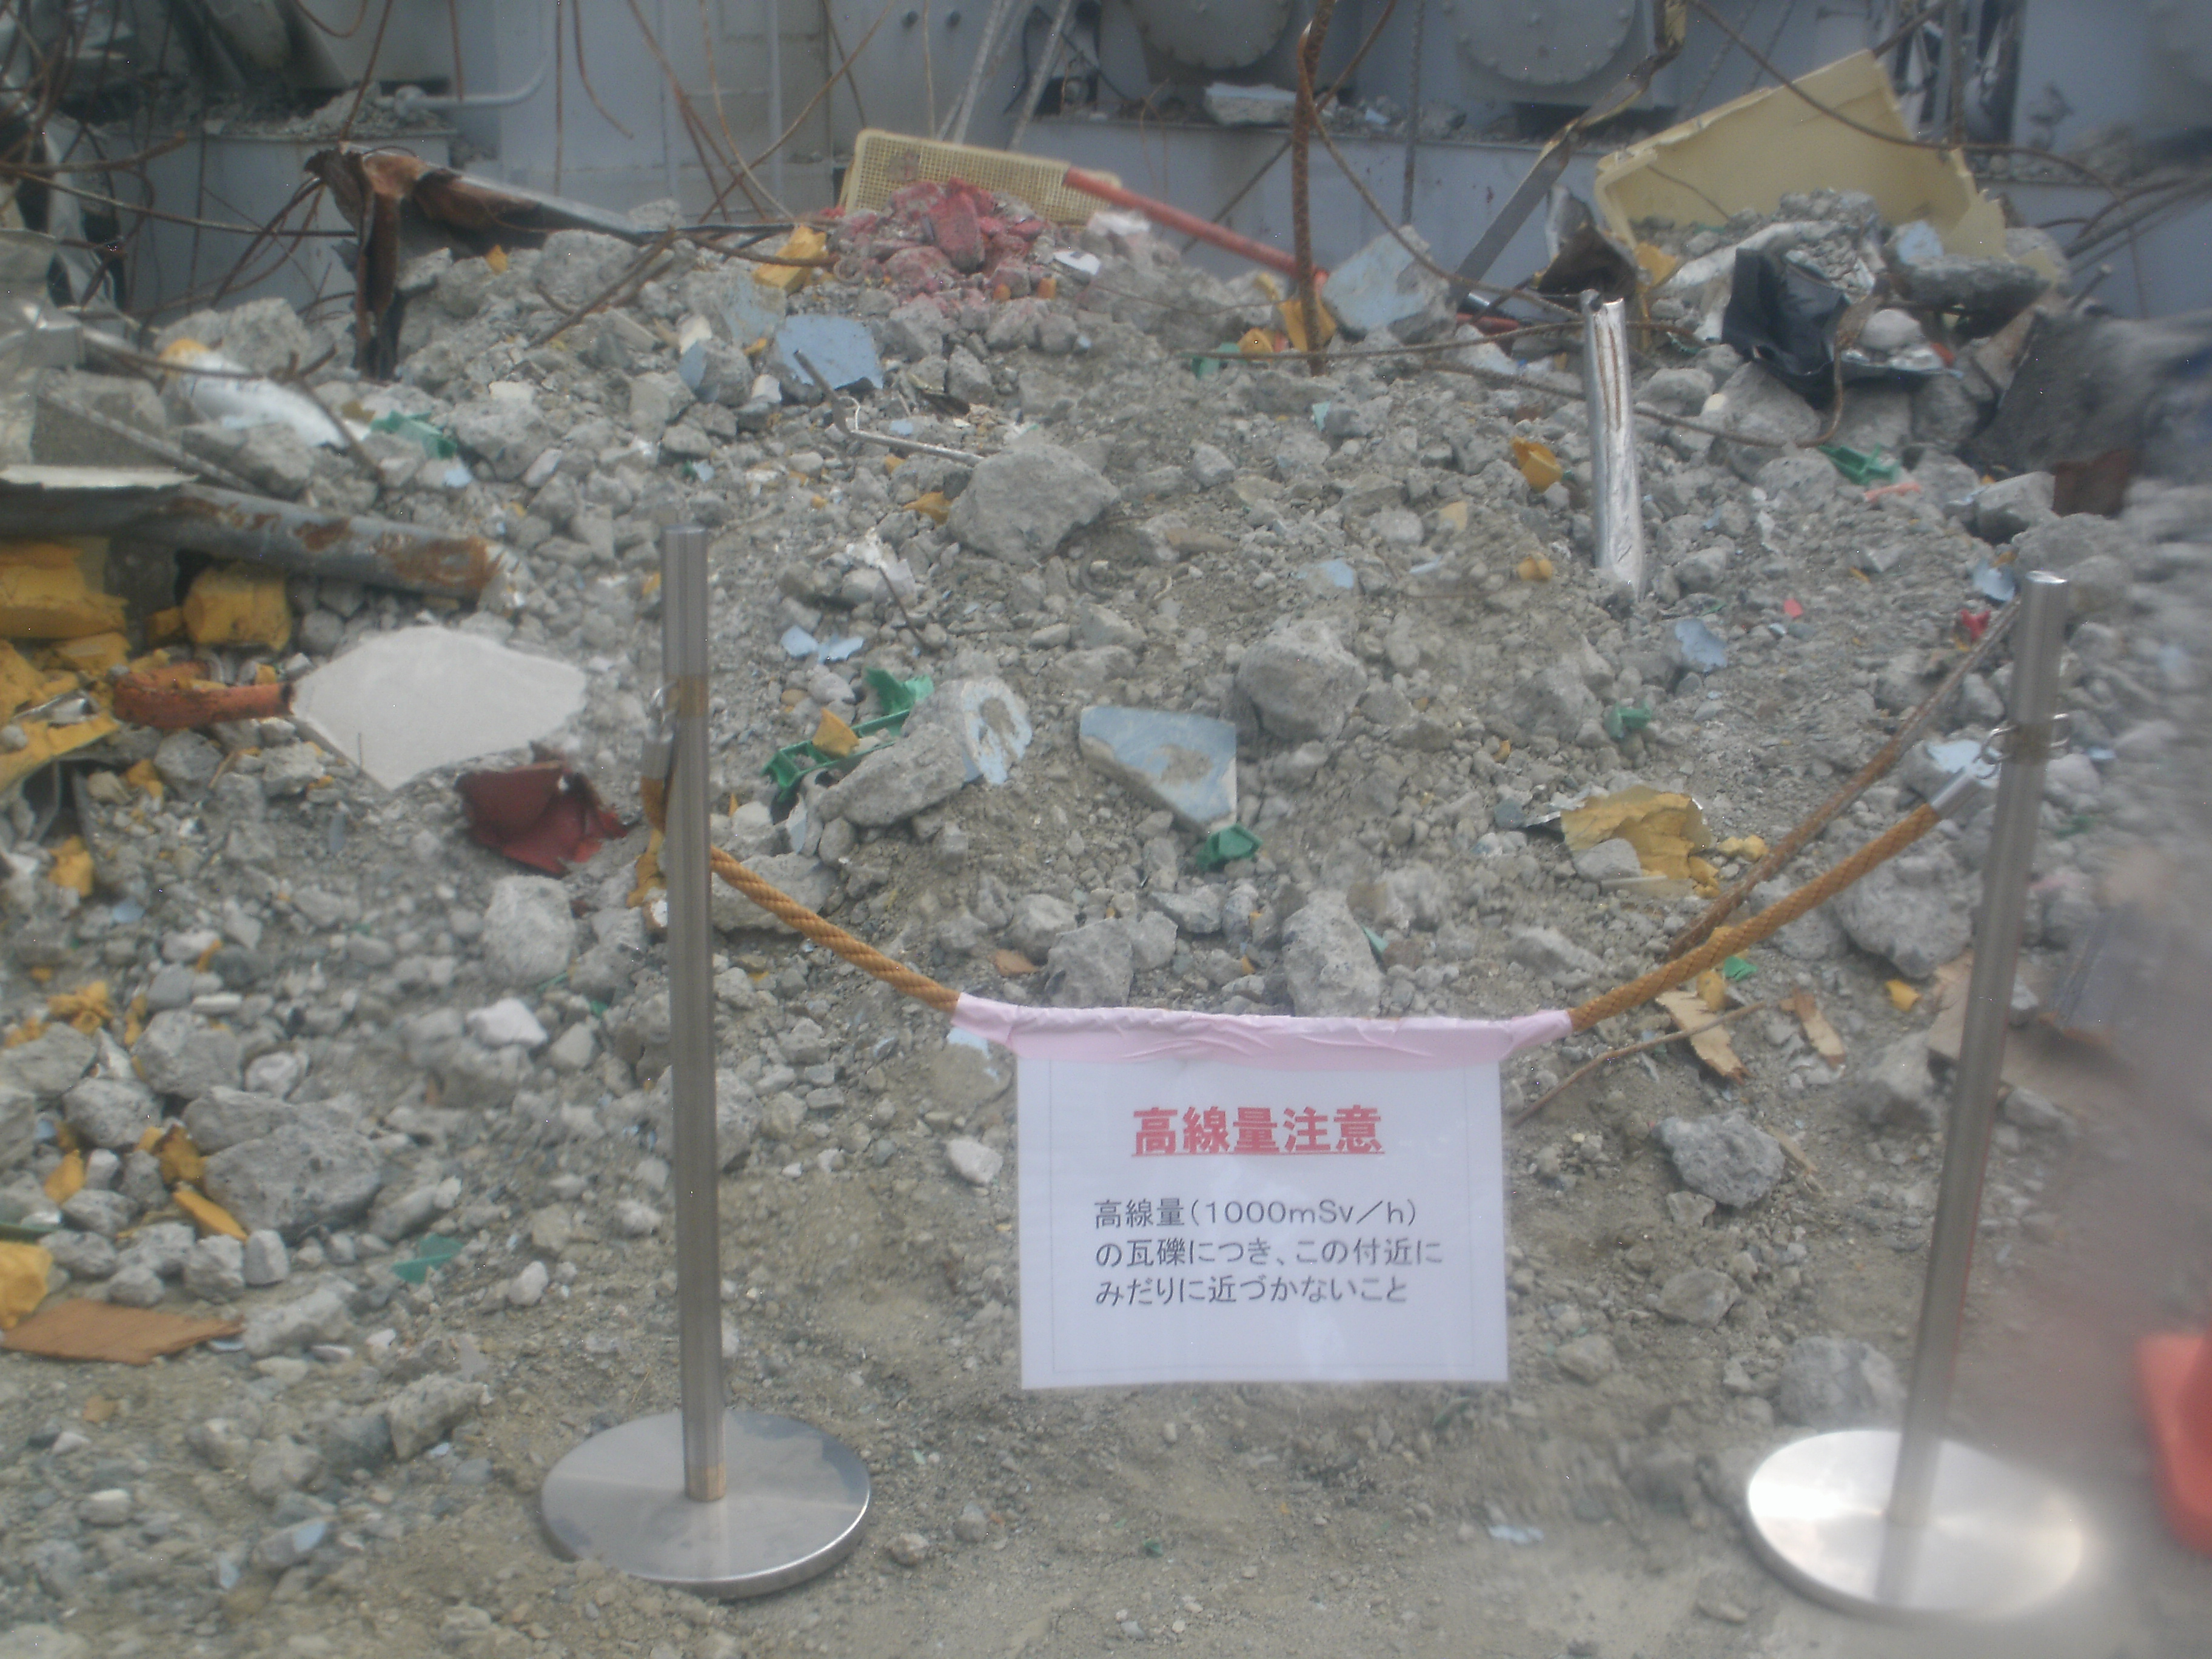 Fukushima Daiichi Nuclear Power Station Rubble around  the reactor building (1)